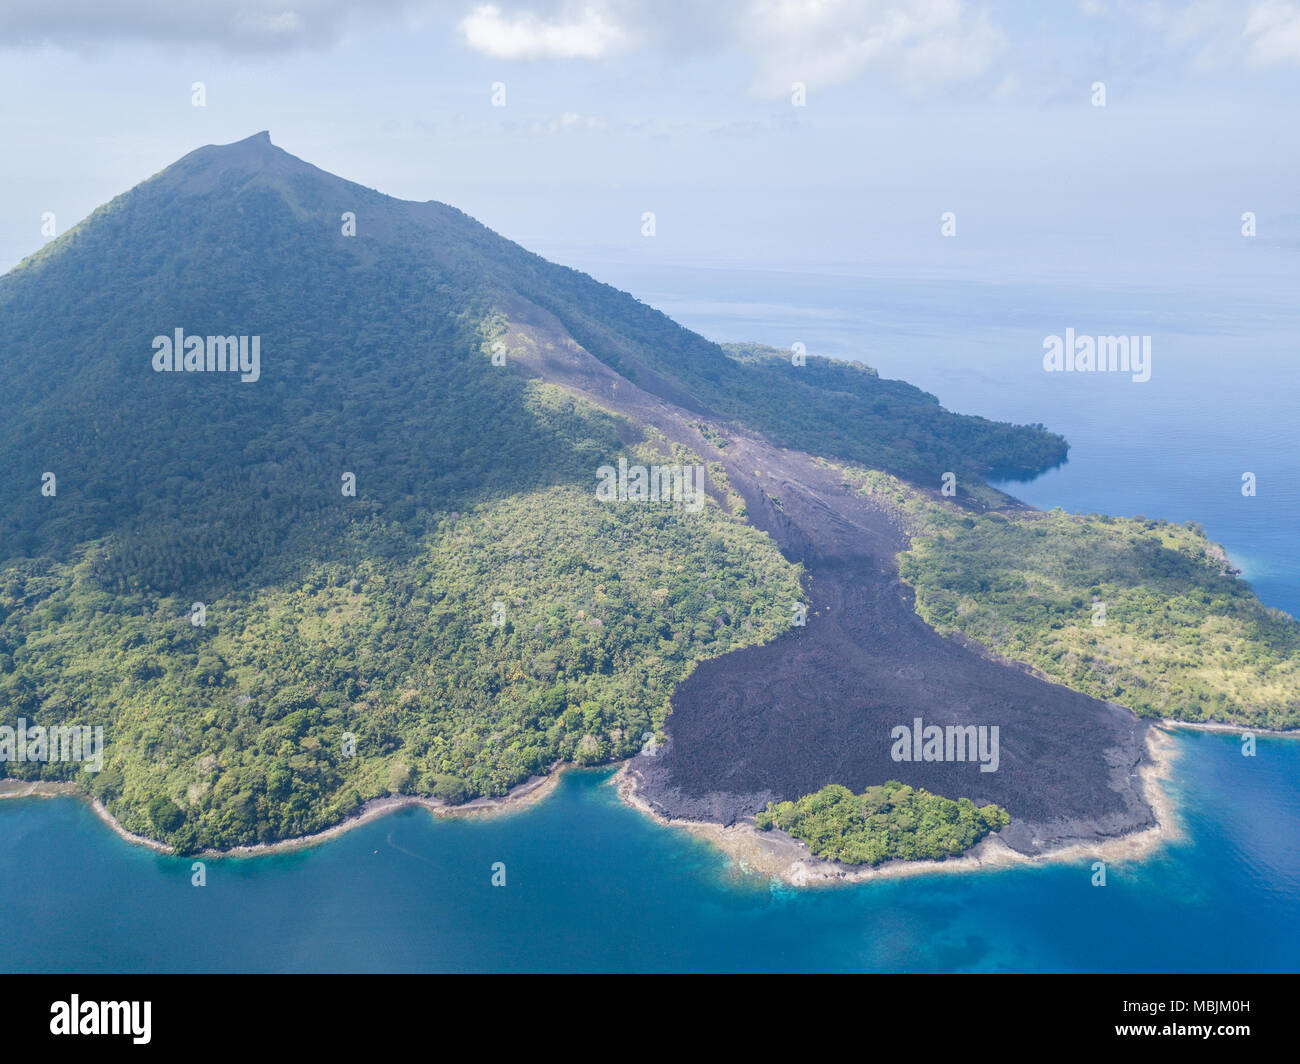 A recent lava flow is seen from a birds eye view on Banda Neira in the Banda Sea. This region is in the Coral Triangle and has high biodiversity. - Stock Image